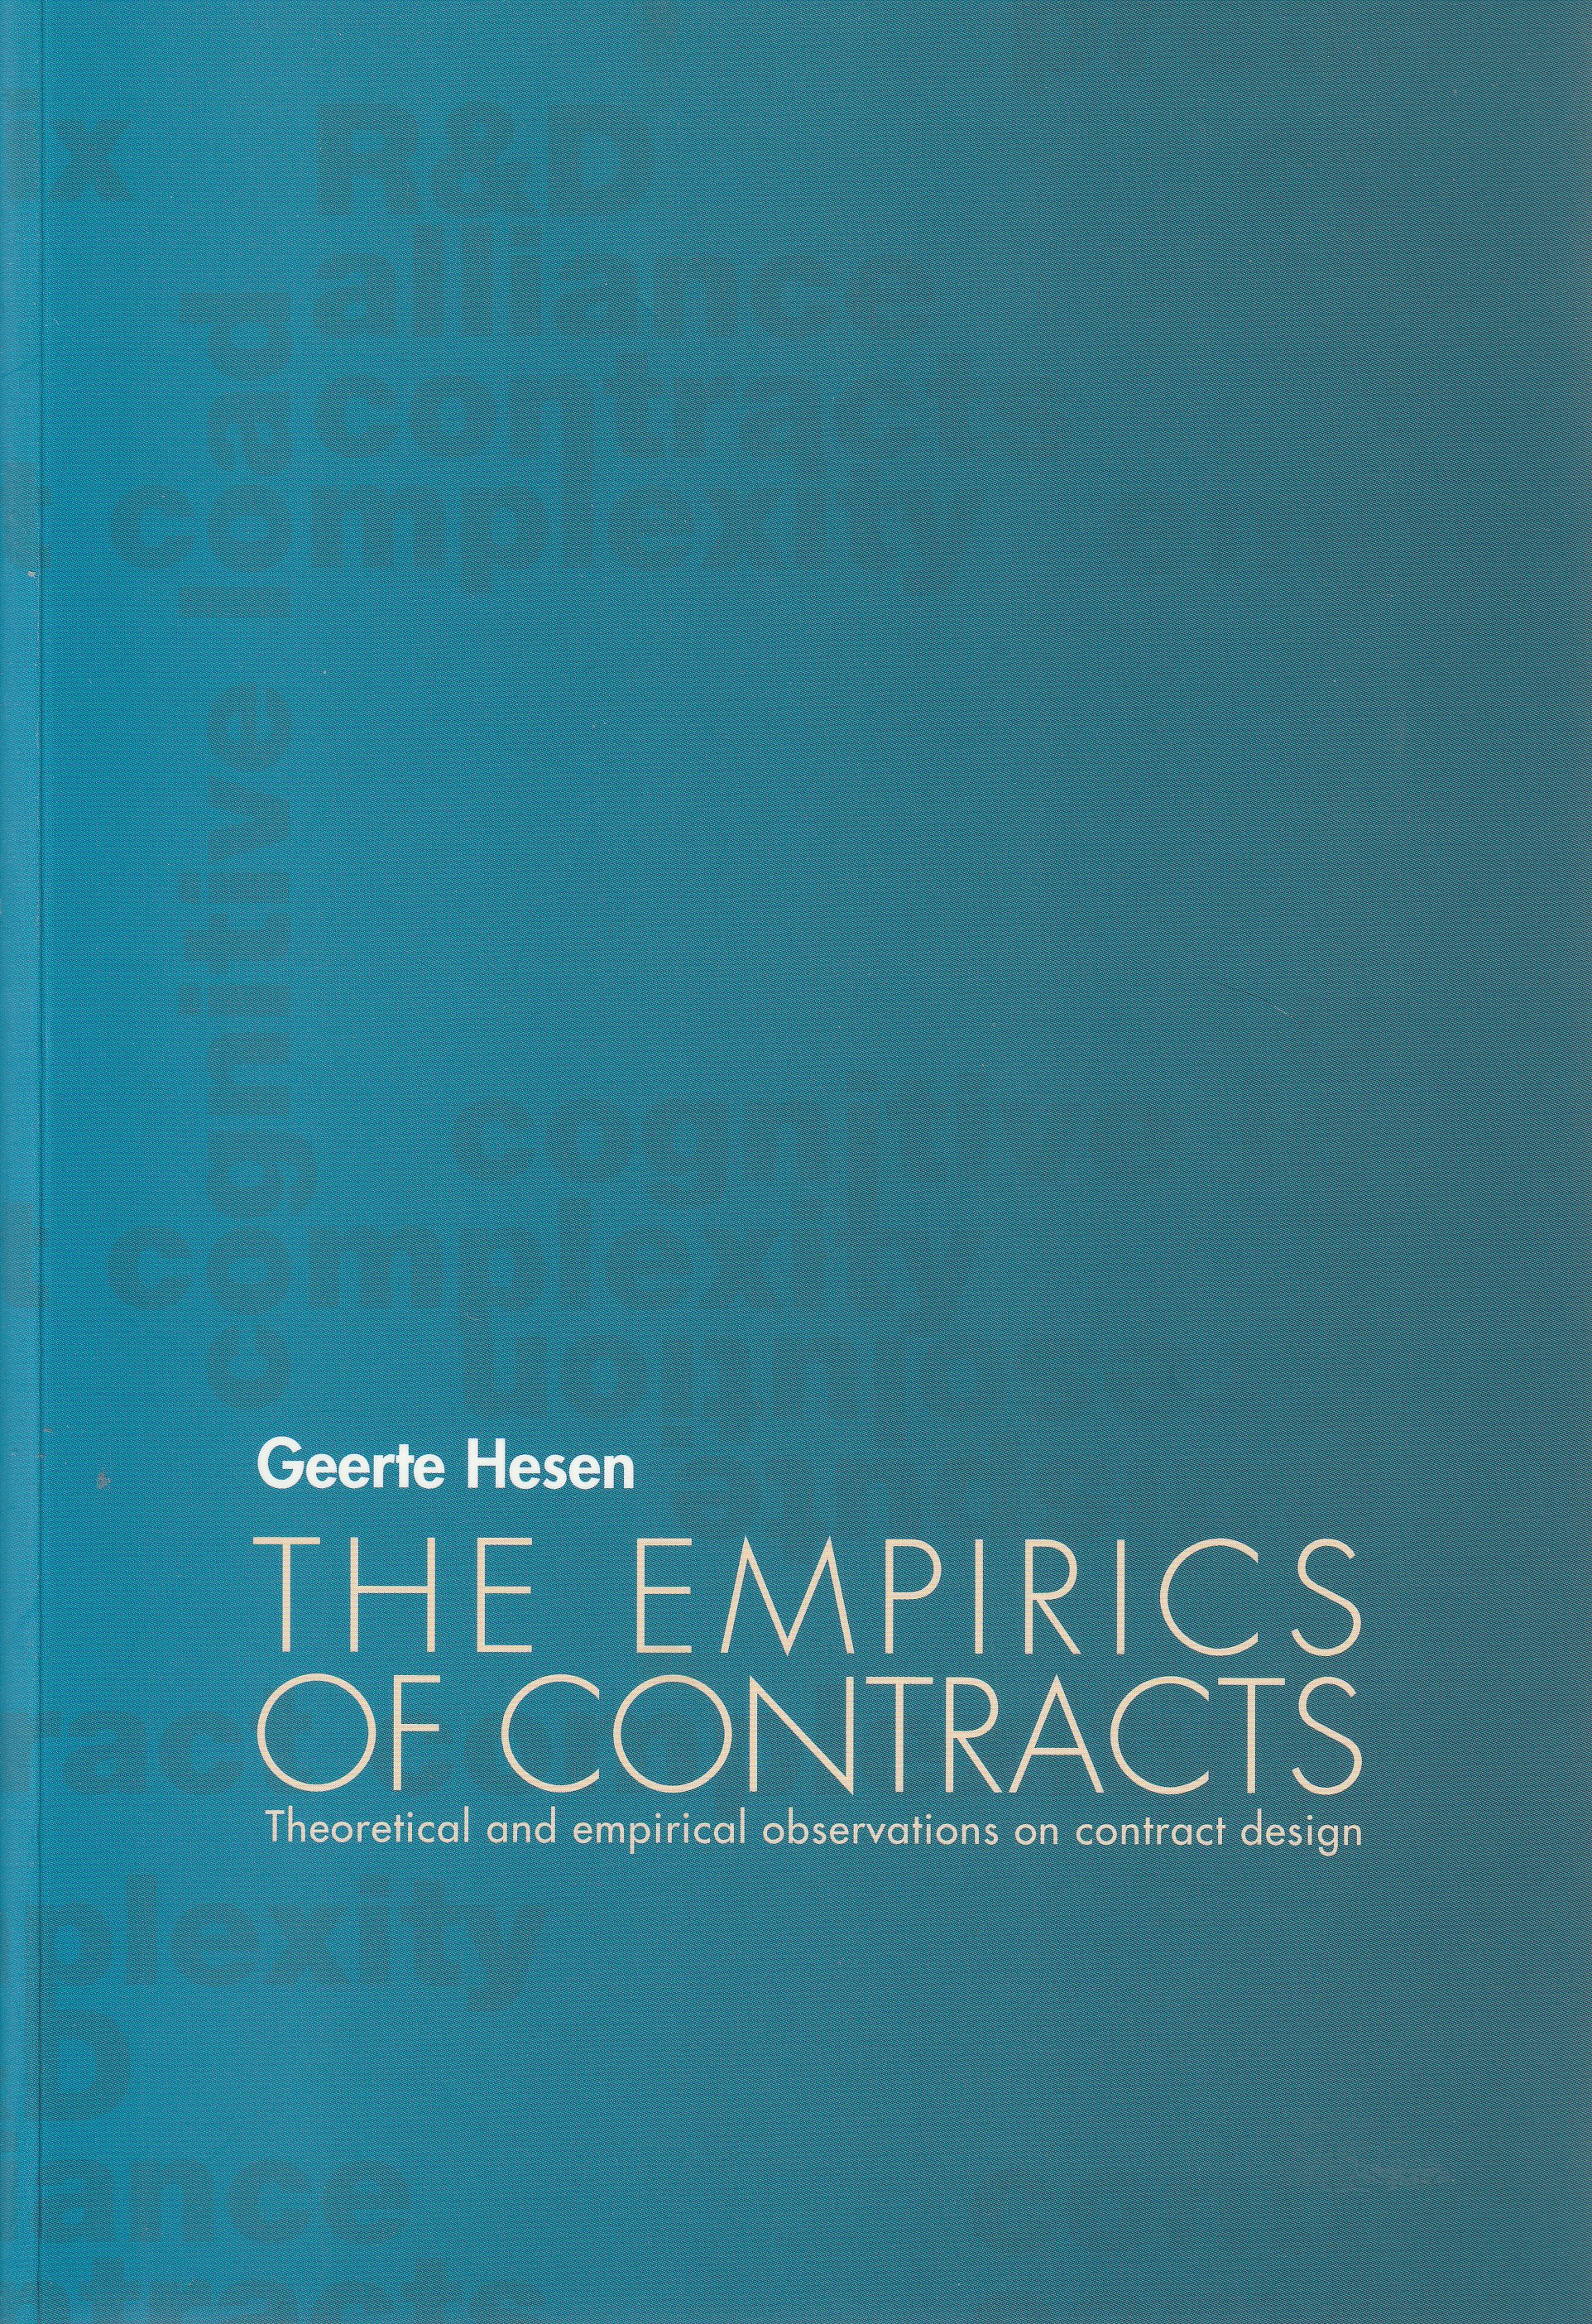 The Empirics of Contracts. Diss.